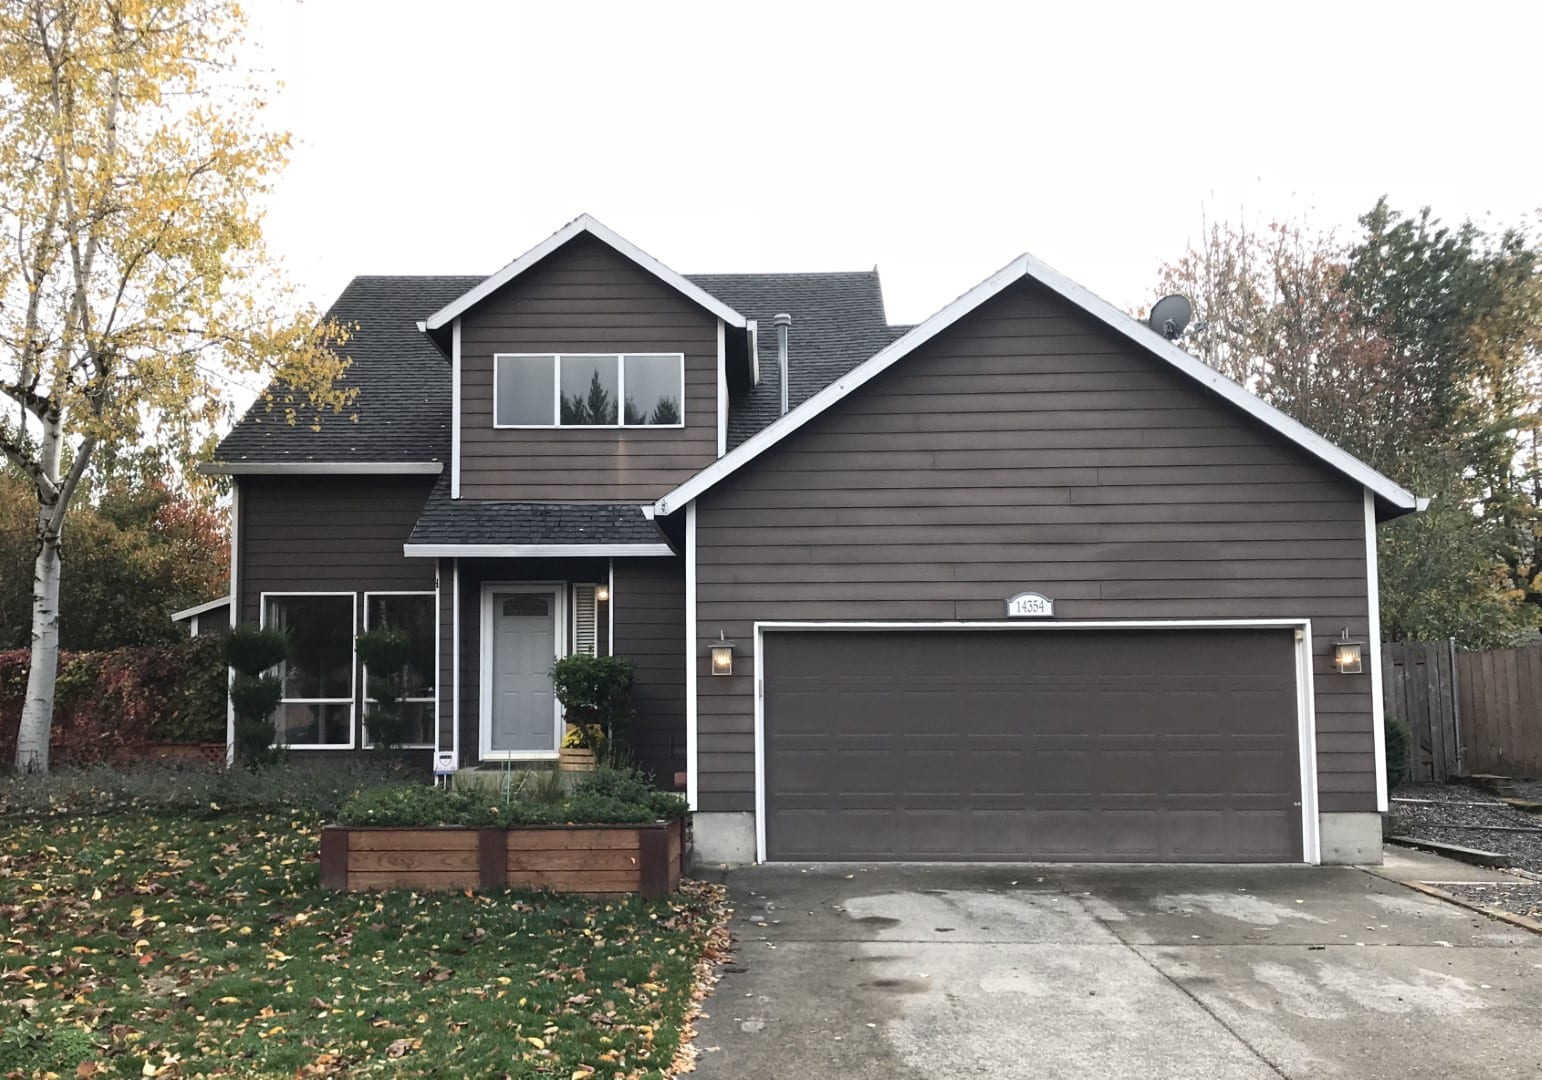 Siding project before and after in portland, before image